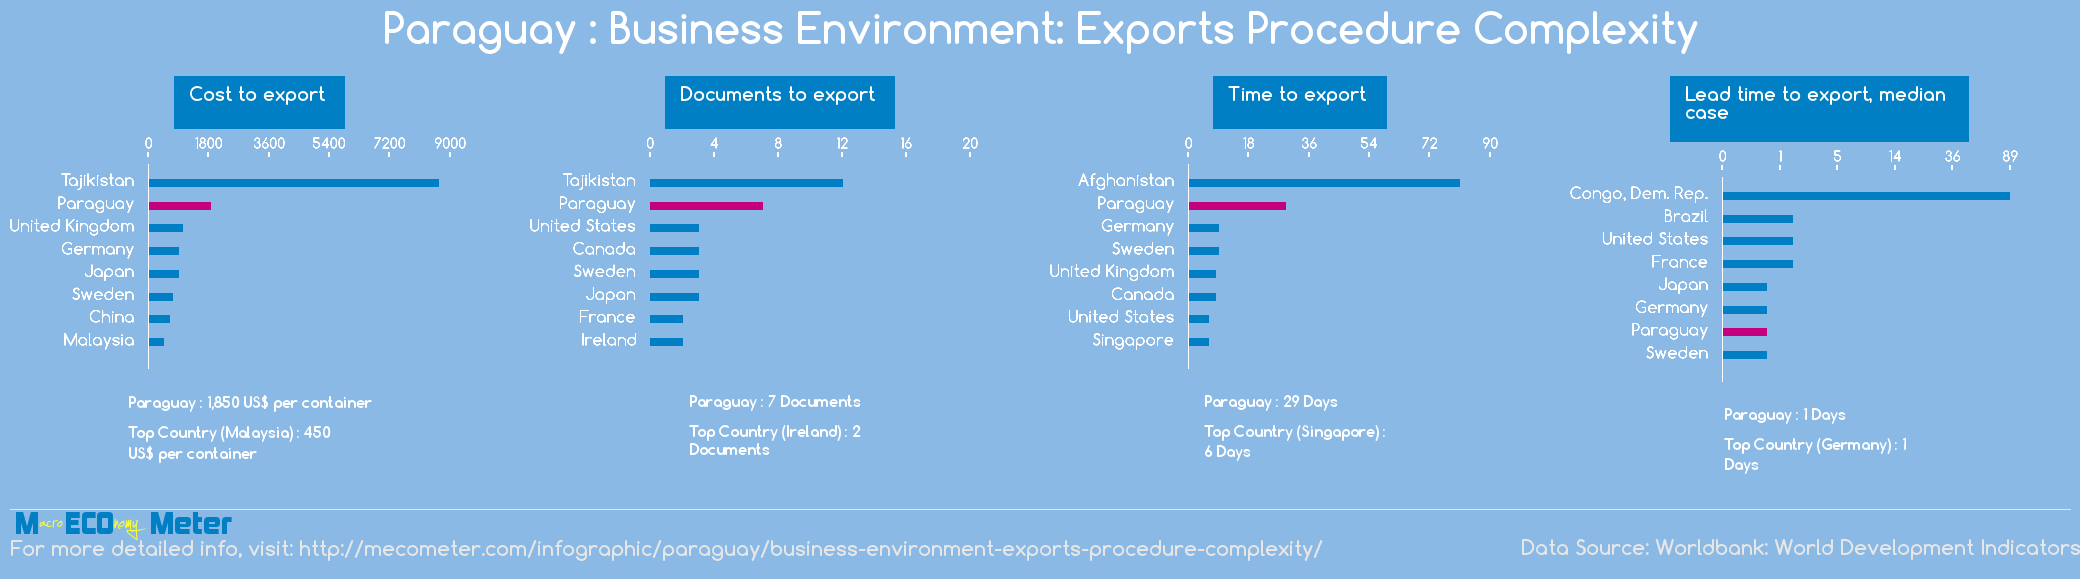 Paraguay : Business Environment: Exports Procedure Complexity